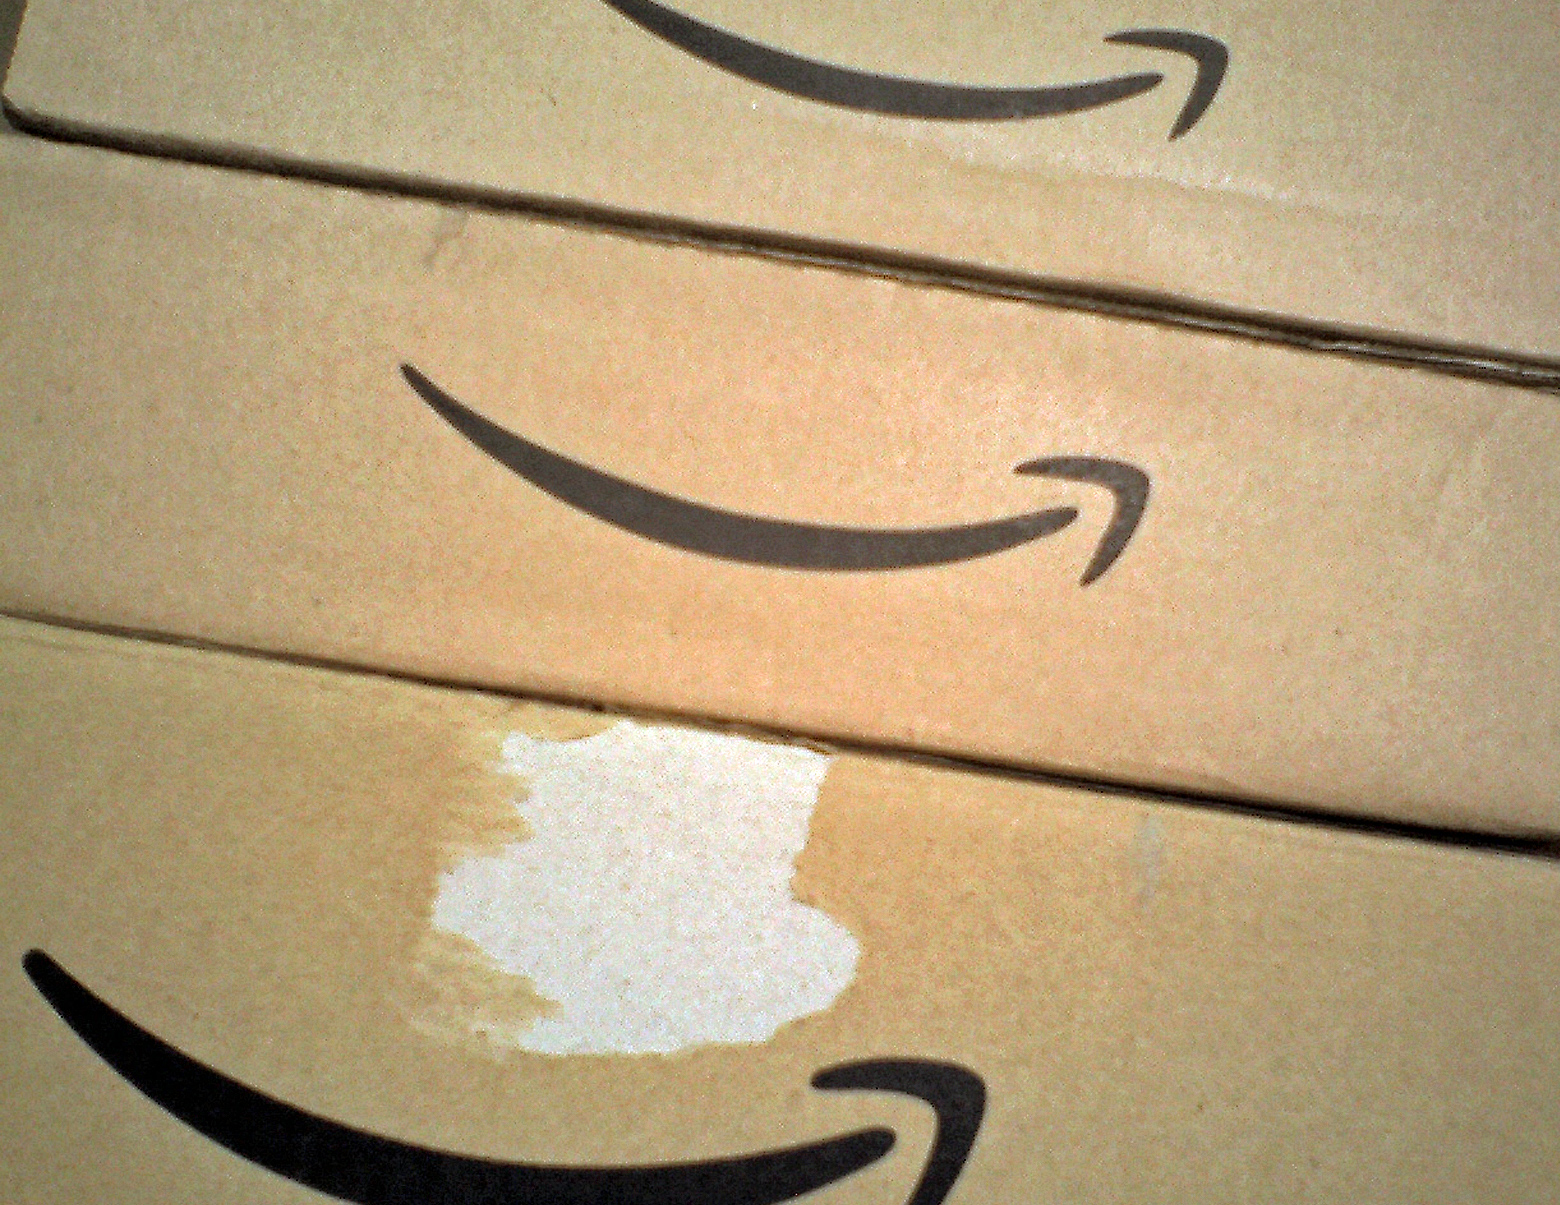 Amazon will pay for you to ship unwanted items to Goodwill